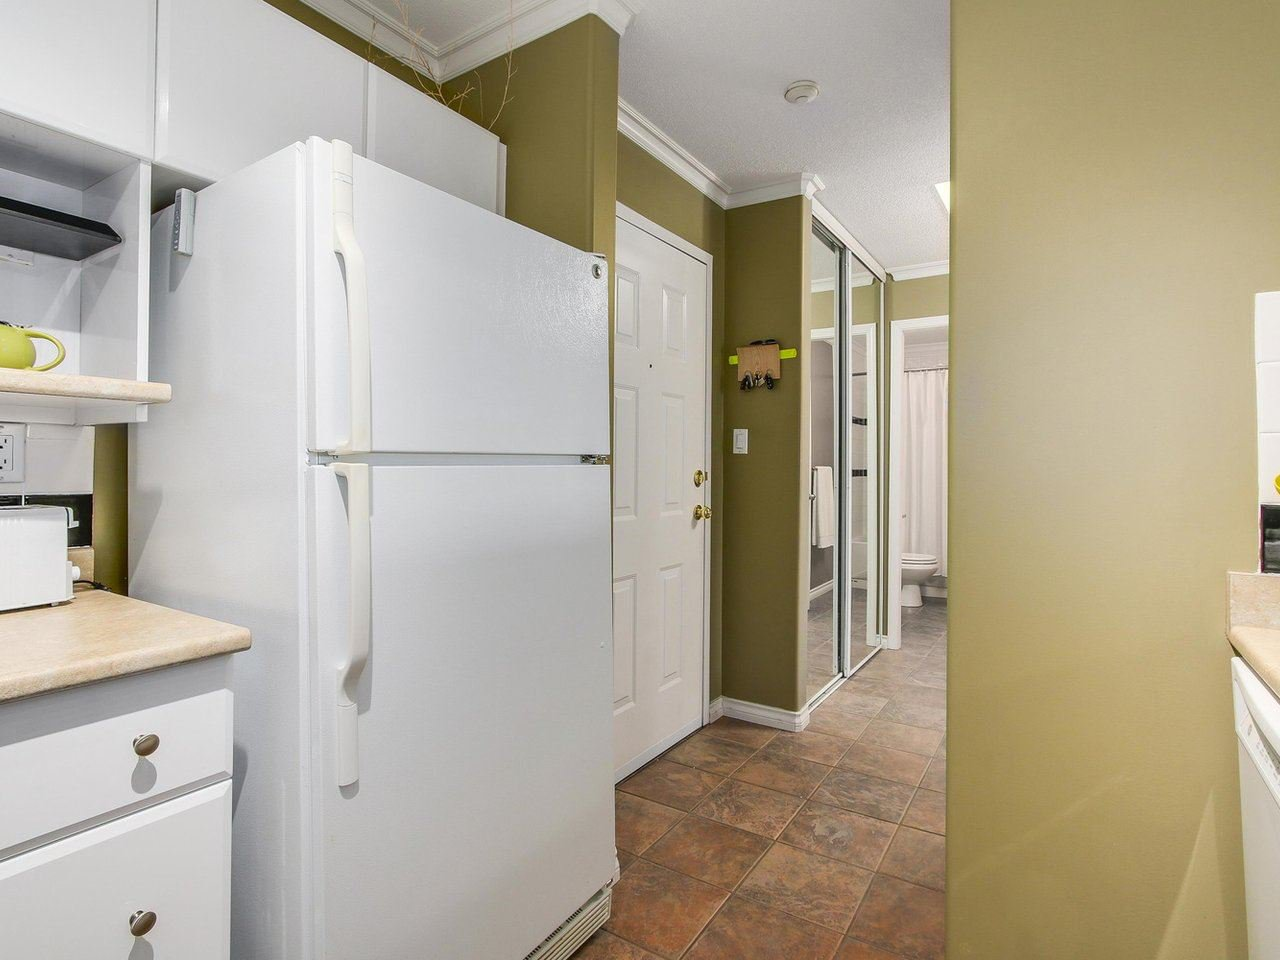 Photo 7: Photos: 304 8120 BENNETT Road in Richmond: Brighouse South Condo for sale : MLS®# R2191205